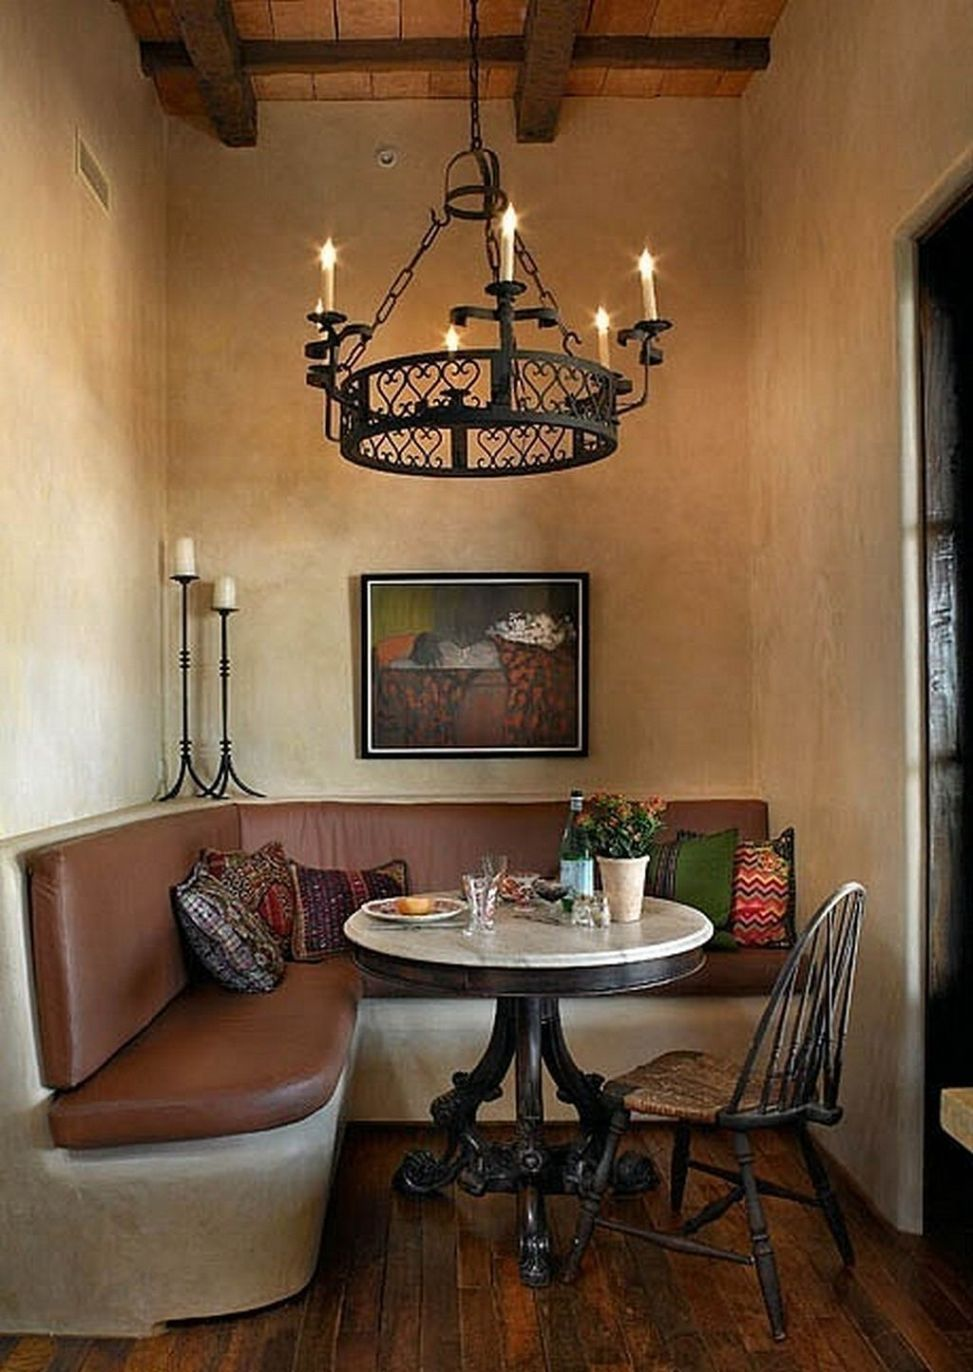 12 Inspirations For Home Improvement With Spanish Home Decorating Ideas: 20+ Spanish Farmhouse Design Inspiration - Page 12 Of 24 - Farhah Decor